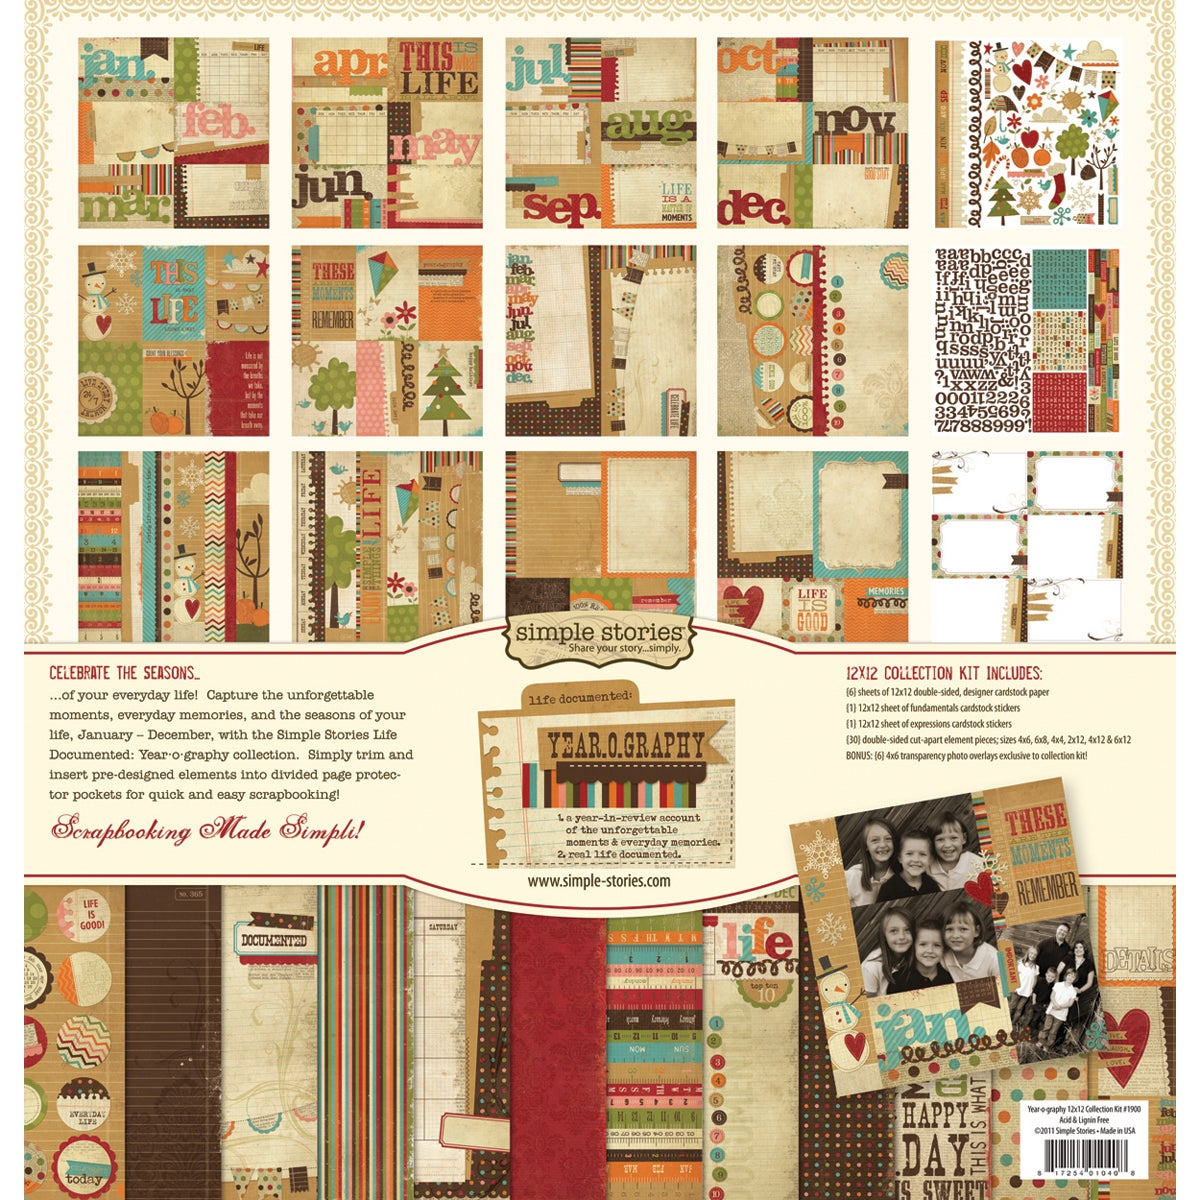 Simple Stories Year-o-graphy Collection 12x12-inch Scrapbooking Kit